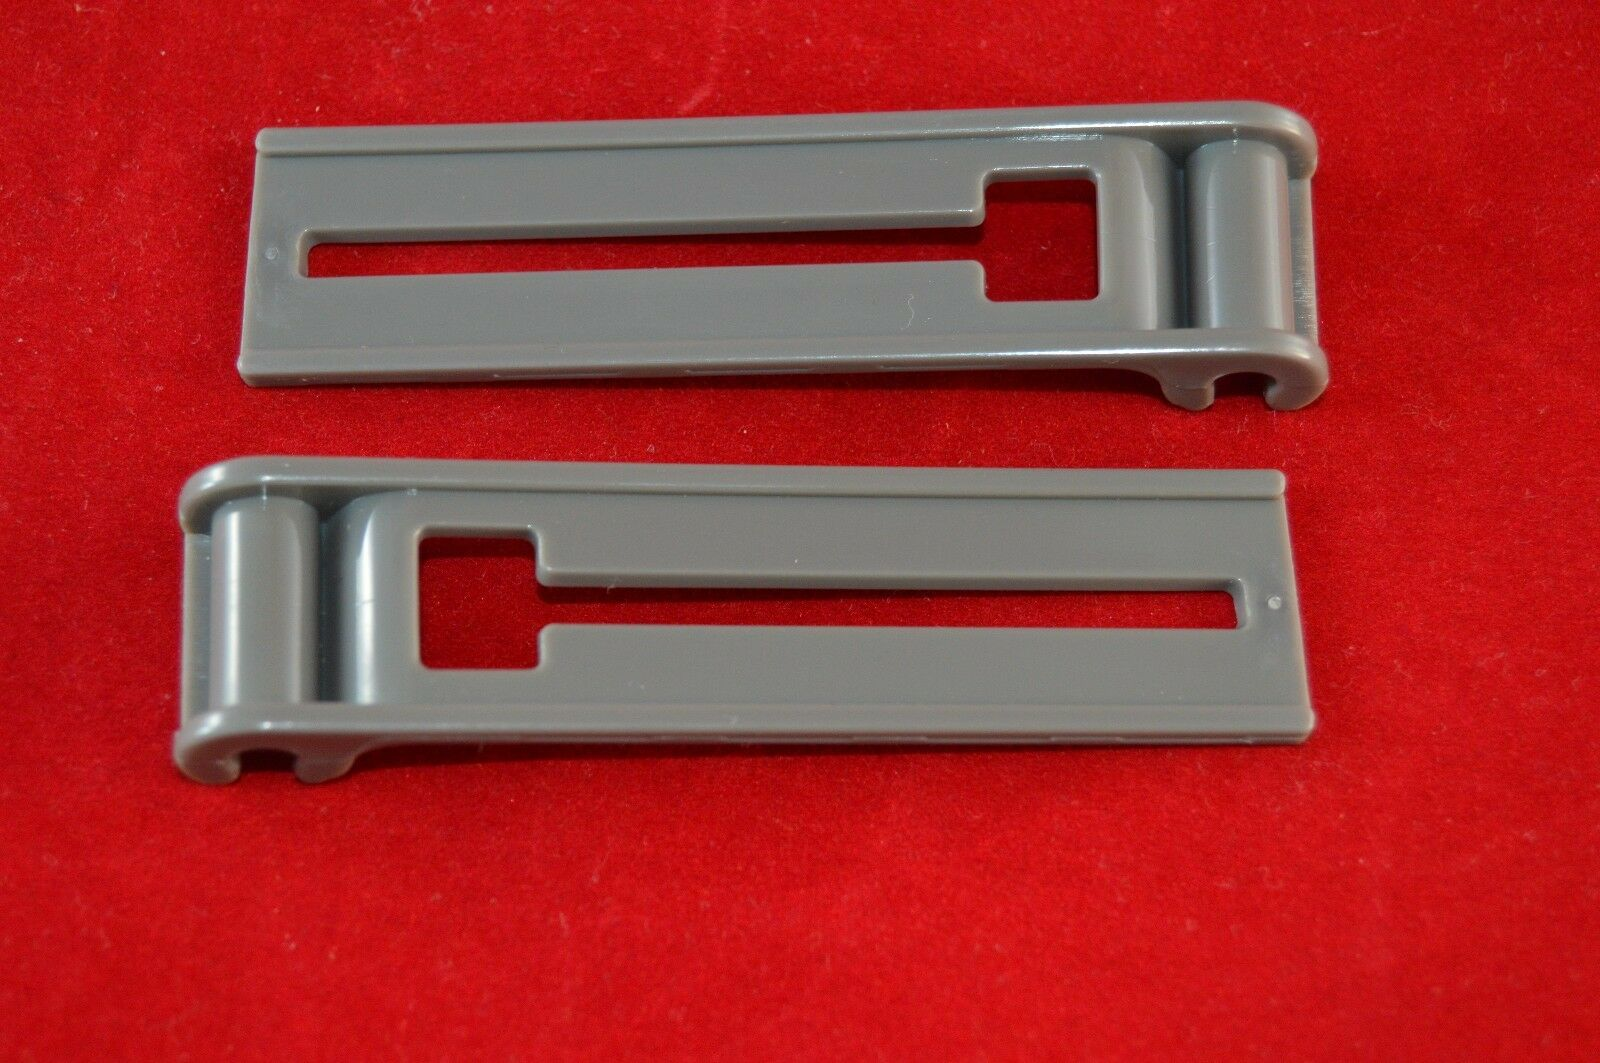 W10195839 Dishwasher Rack Adjuster PS3407015 New 2 Pack